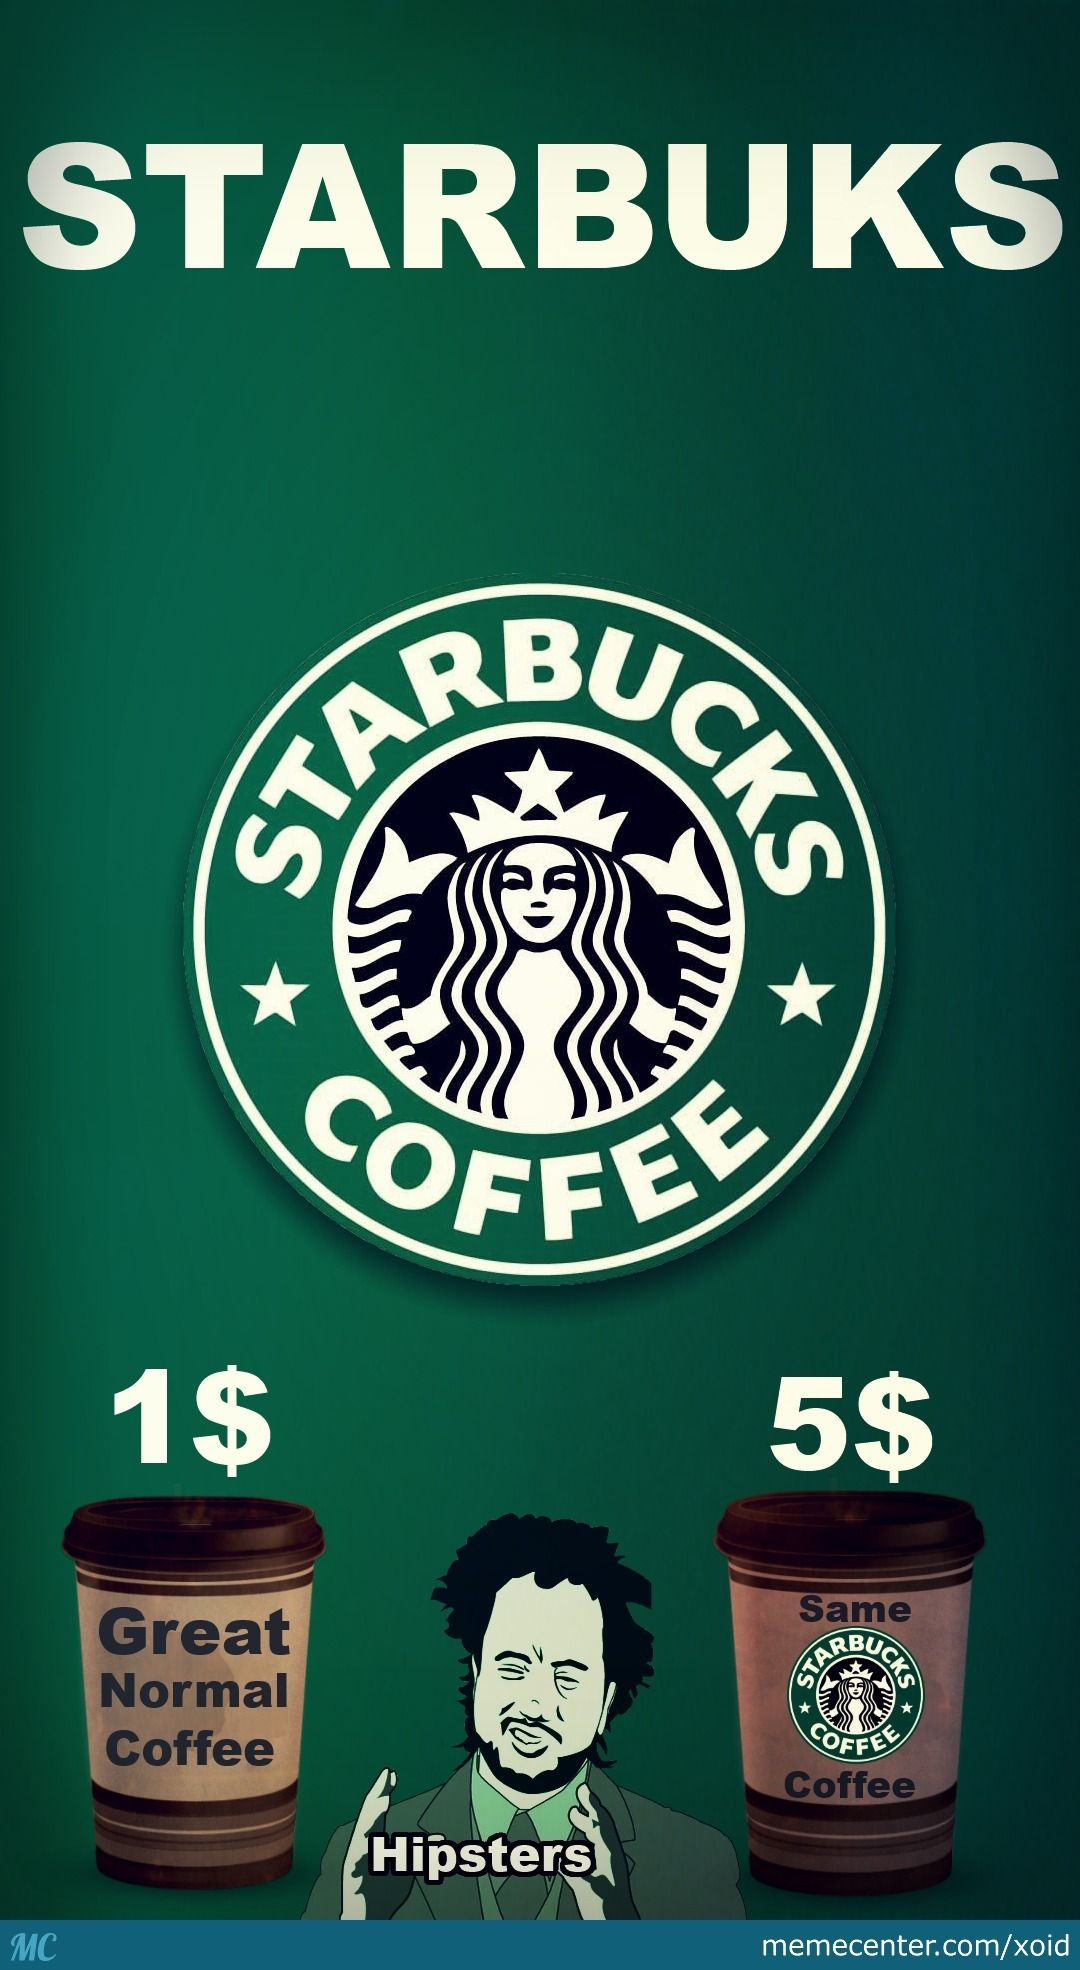 reputable site f0ccf 90e4b Starbucks Logo Meme Best Funny Videos, Best Memes, Viral Videos, Starbucks  Logo,